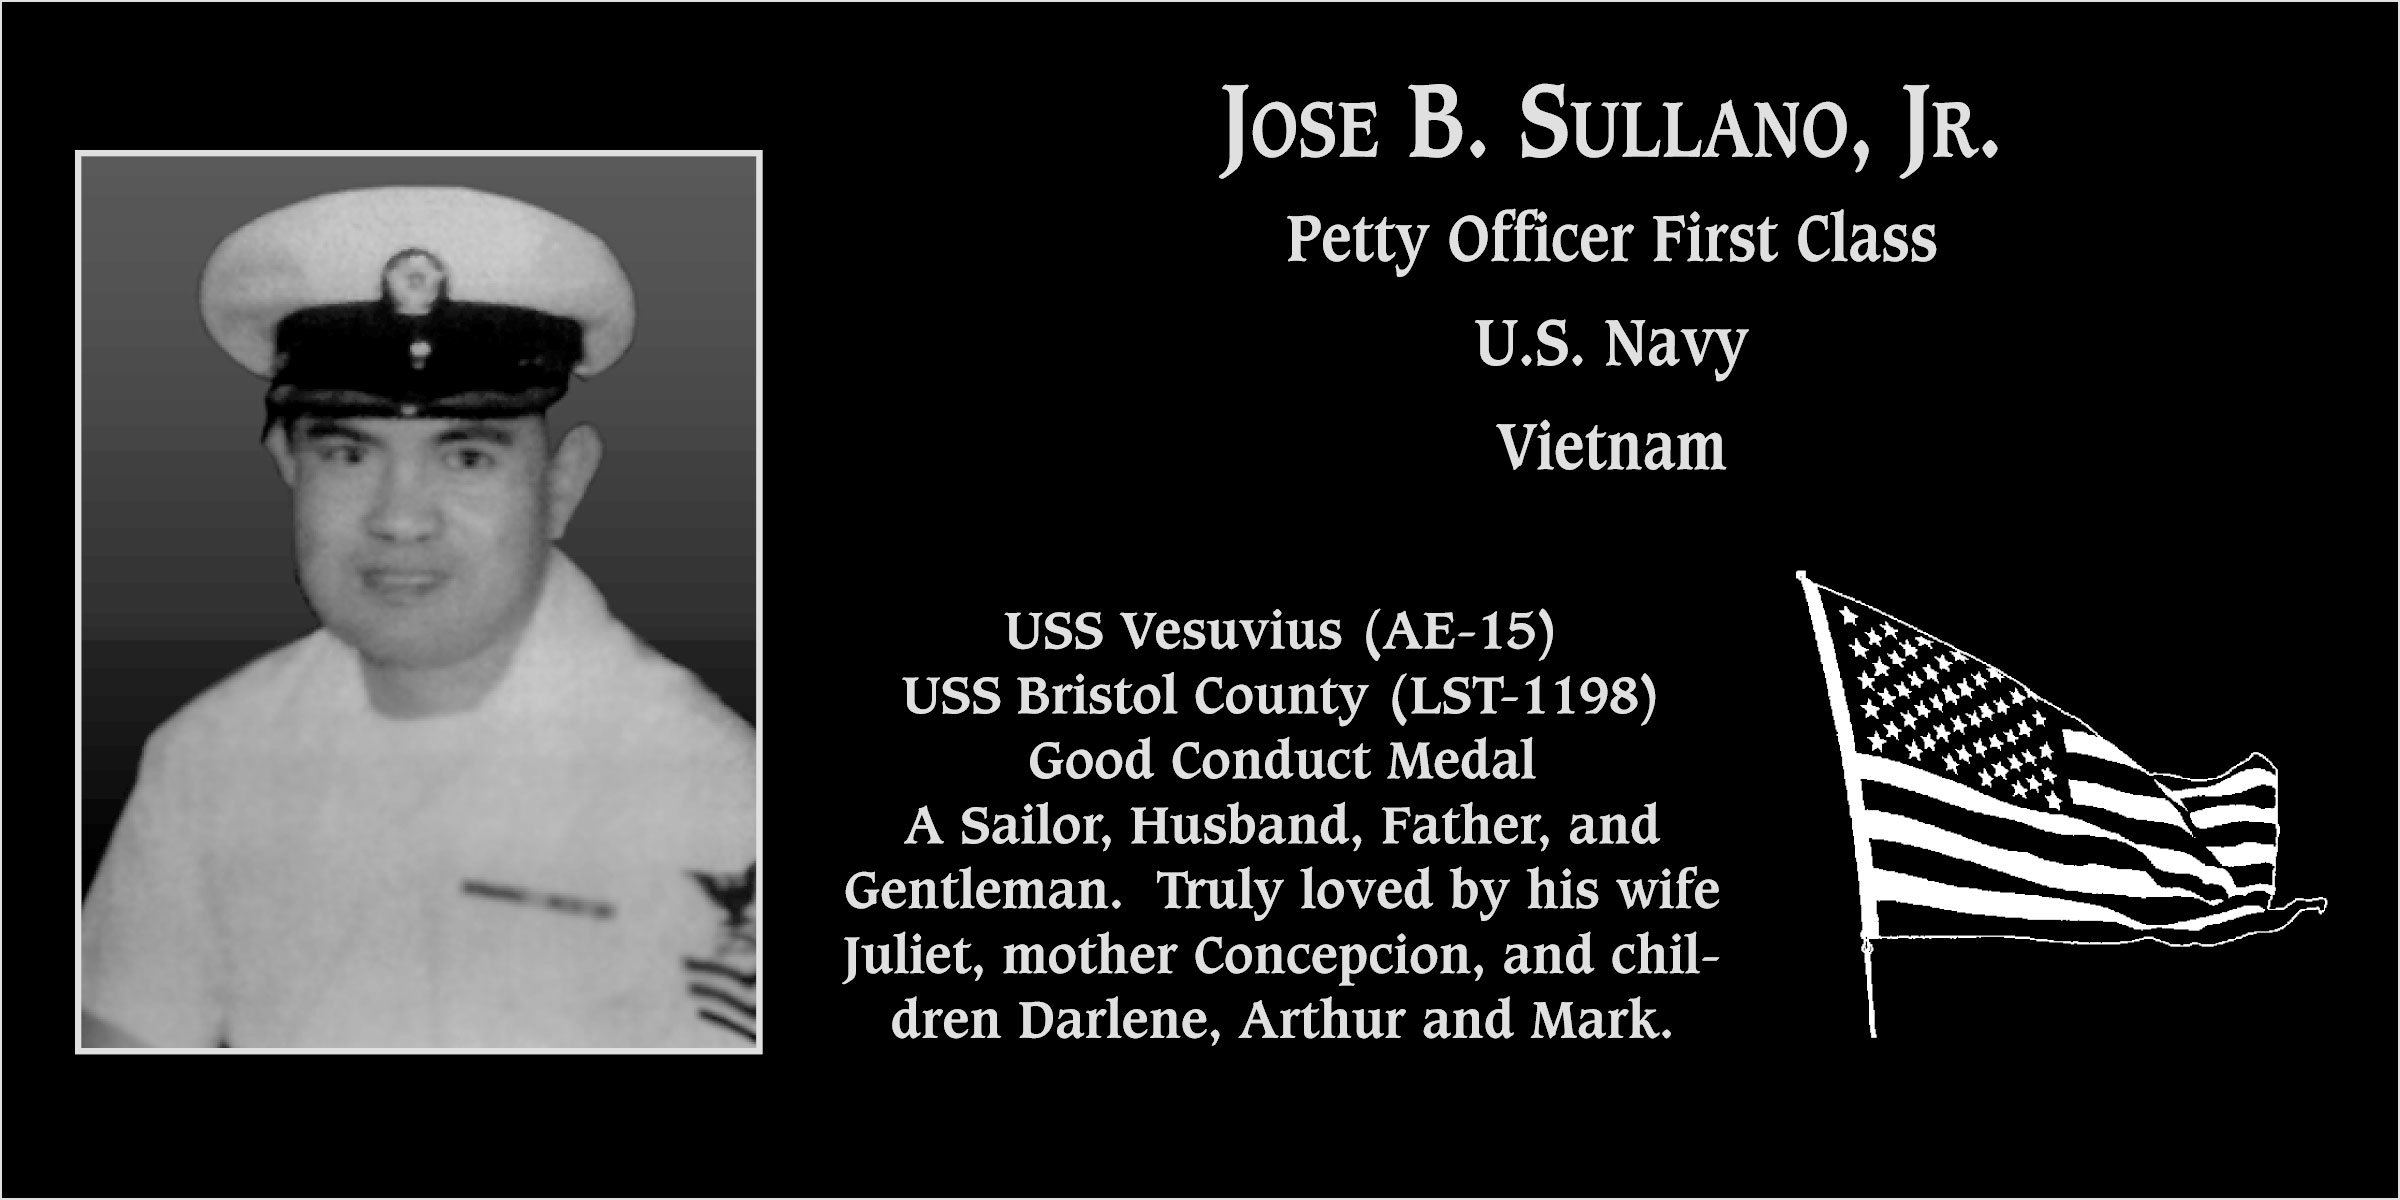 Jose B. Sullano, Jr.